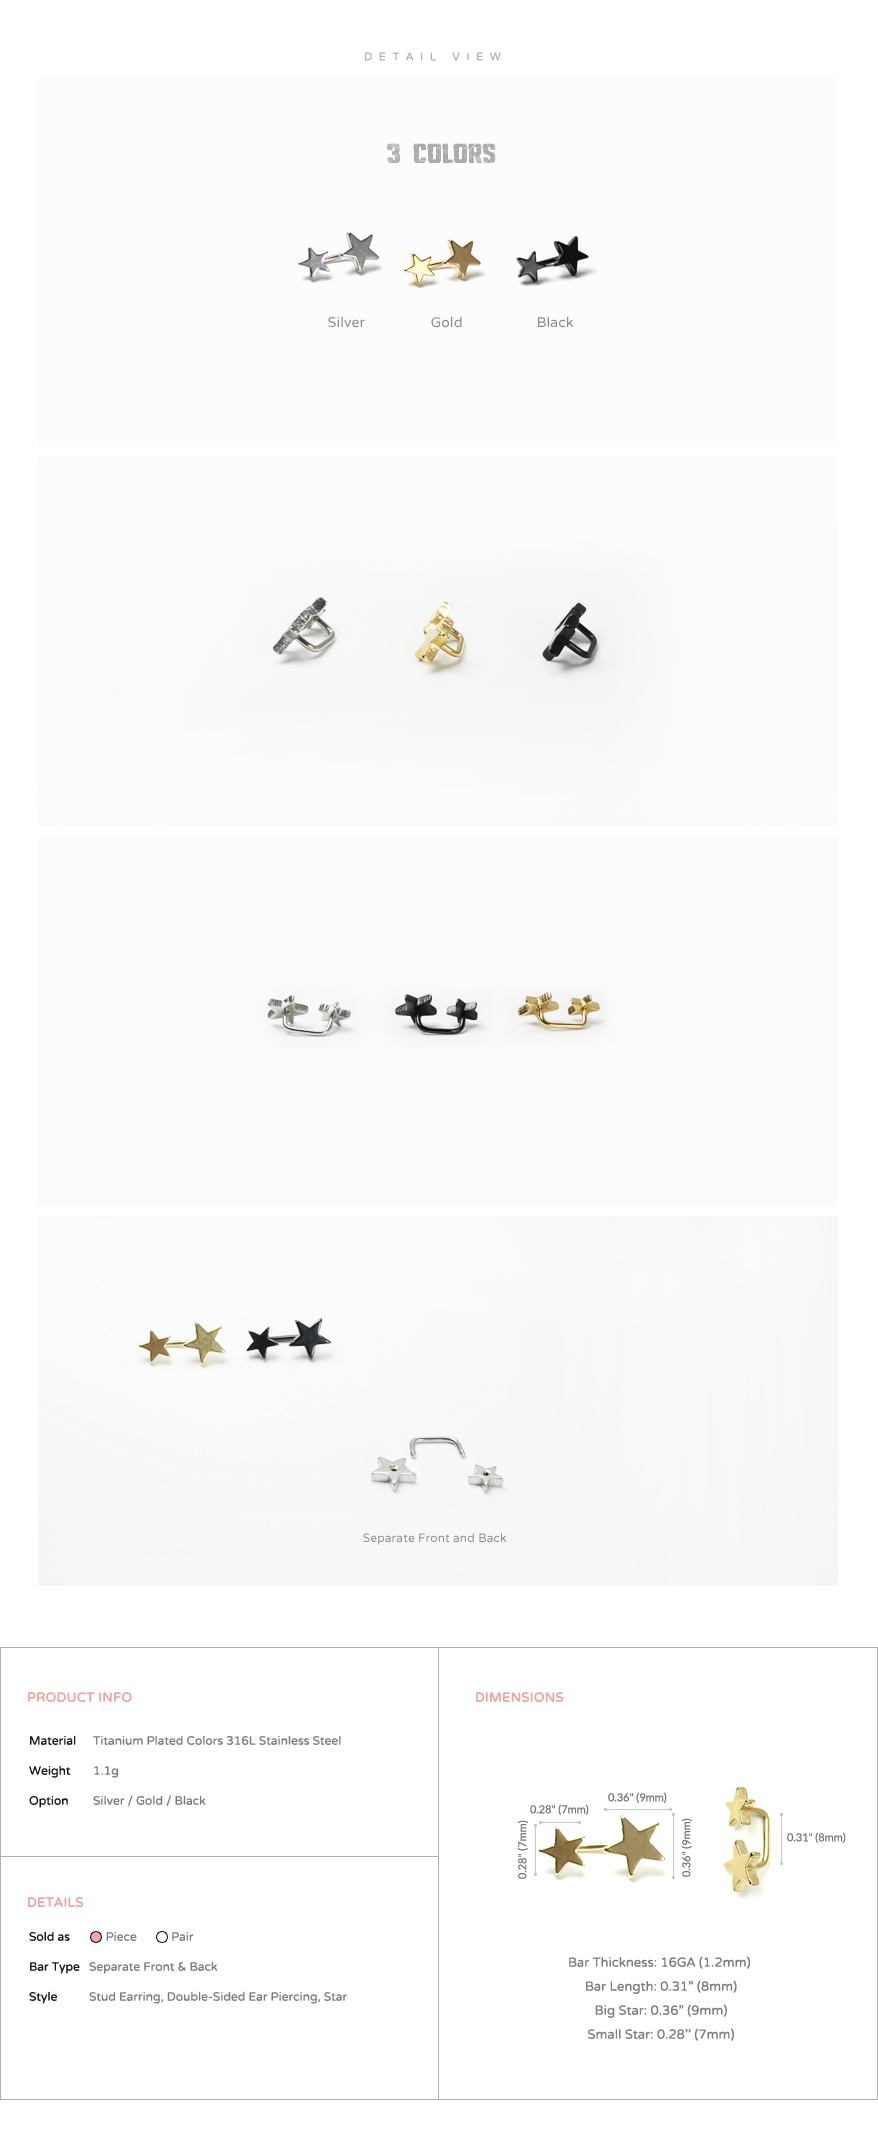 ear_studs_piercing_Cartilage_16g_316l_Stainless_Steel_earring_korean_asian_style_barbell_star_double_sided_3